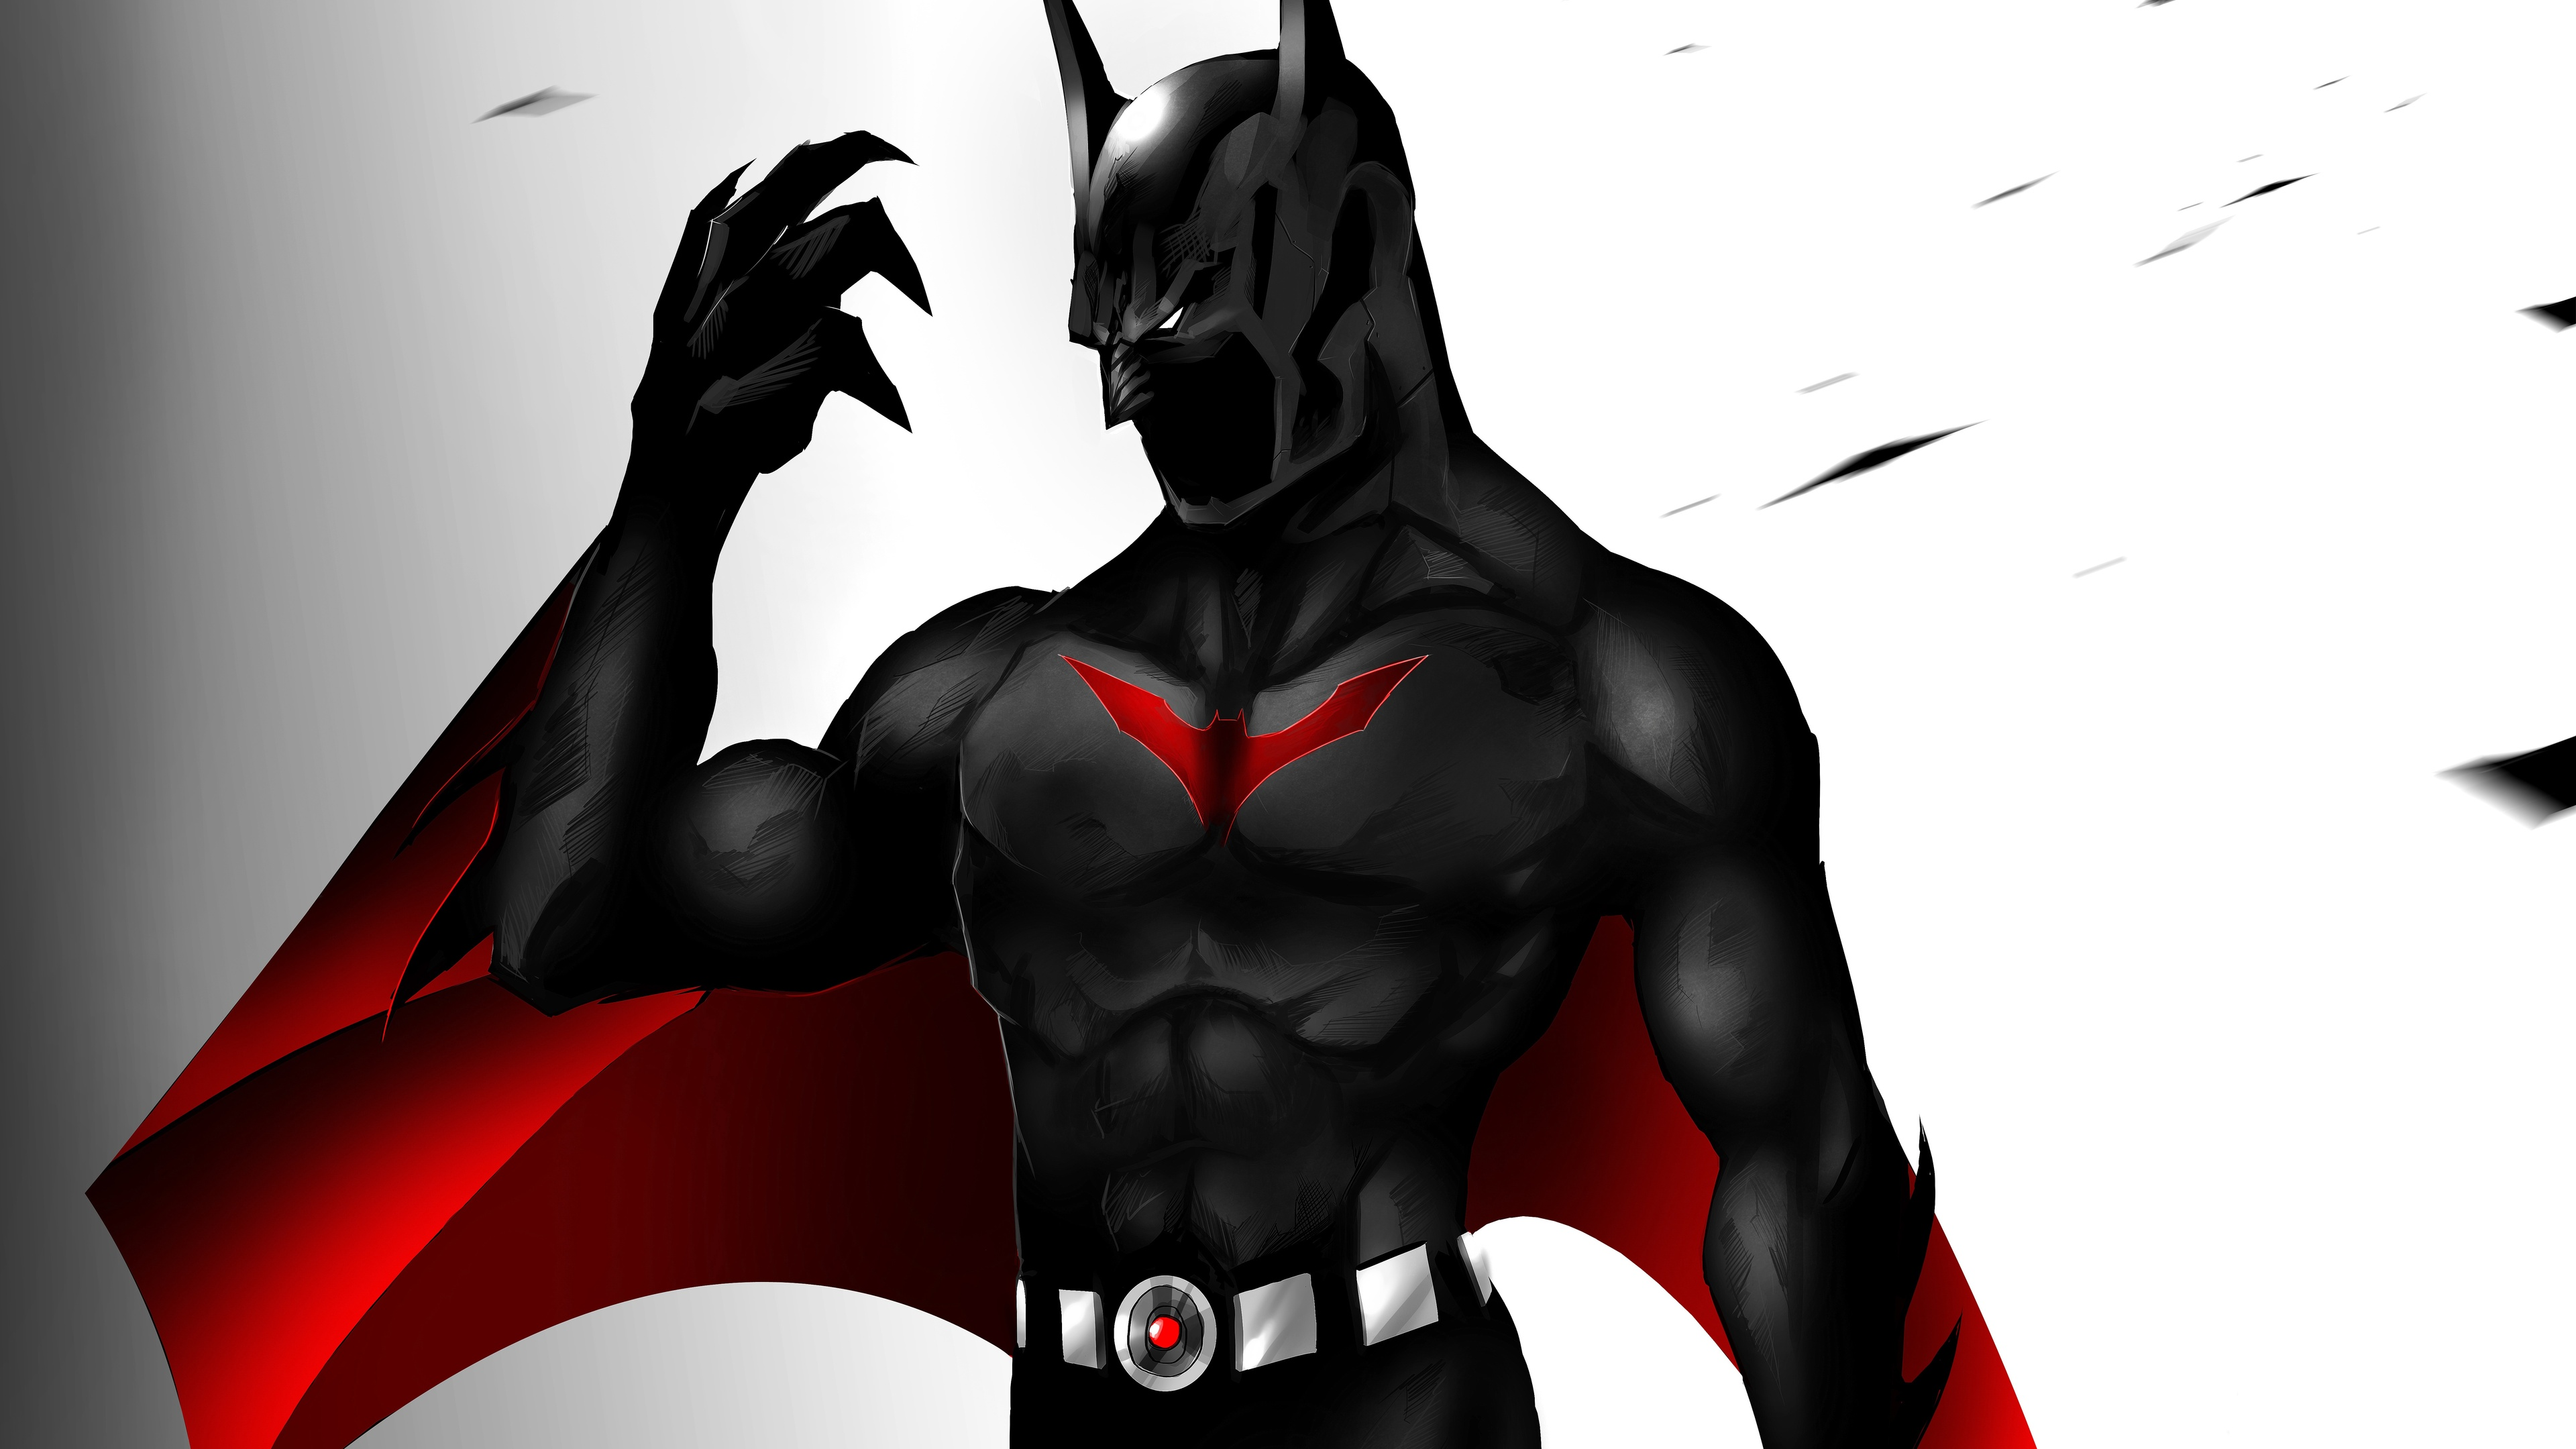 3840x2160 Batman Beyond 8k 4k Hd 4k Wallpapers Images Backgrounds